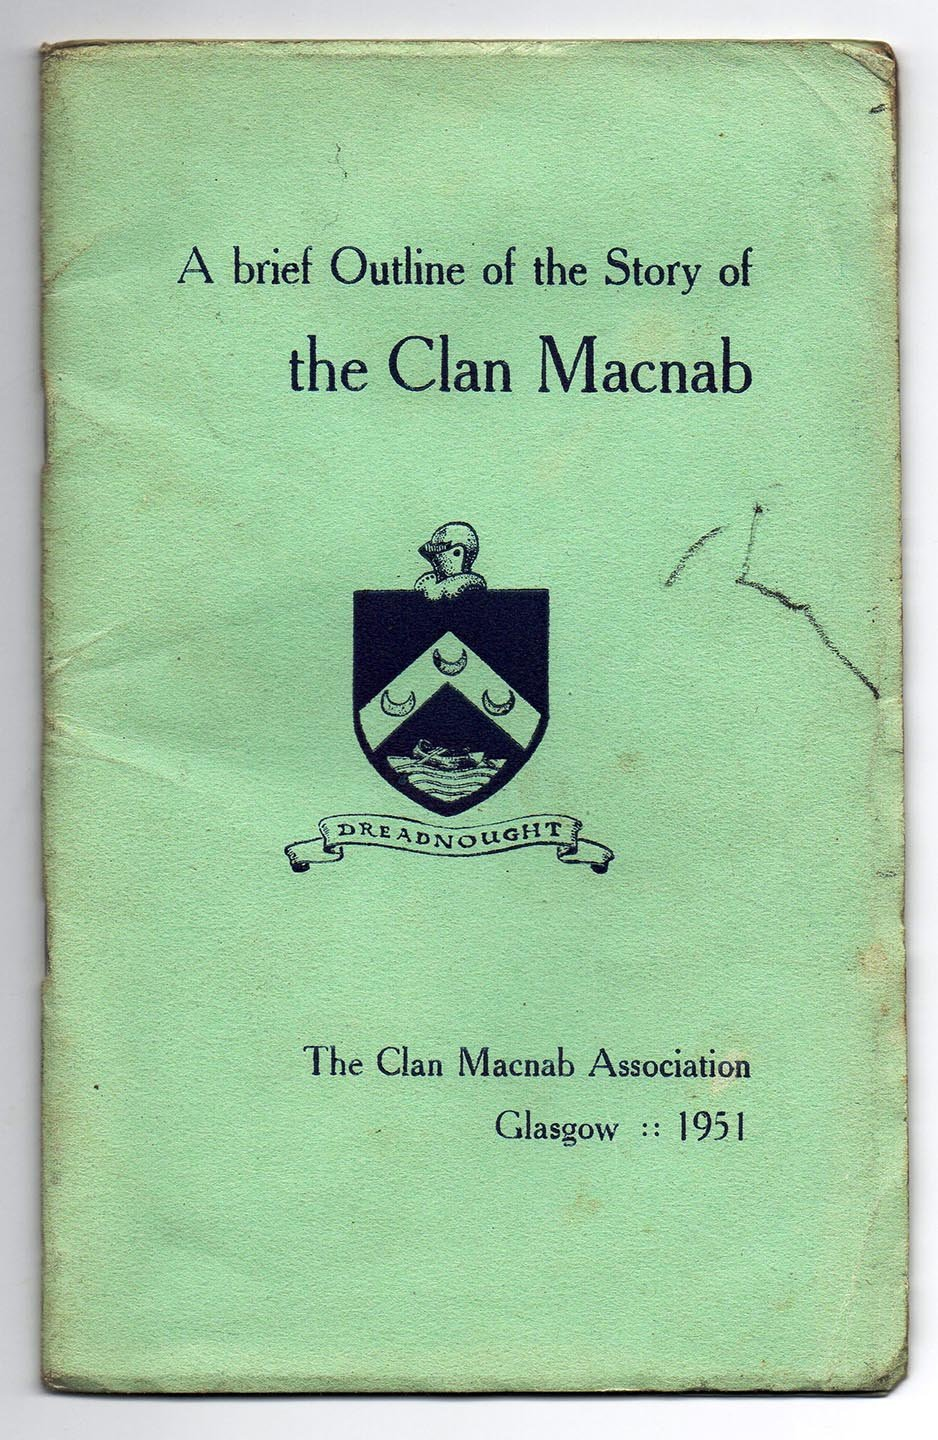 A brief Outline of the Story of the Clan Macnab